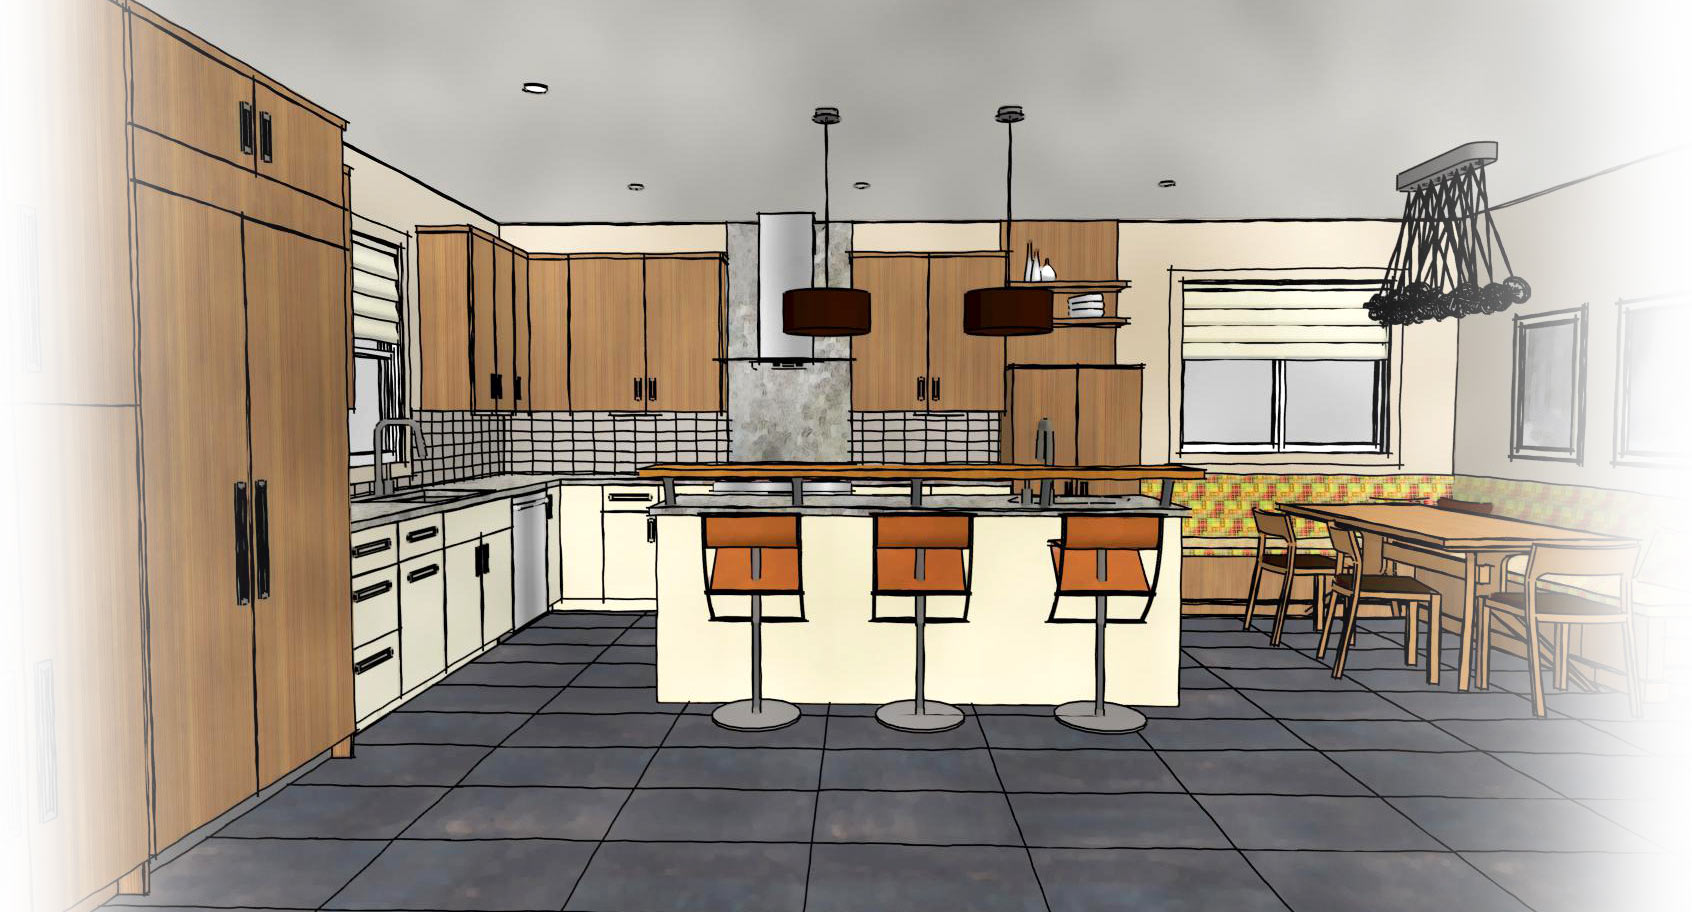 kitchen furniture interior design software  Chief Architect Interior Software for Professional Interior Designers